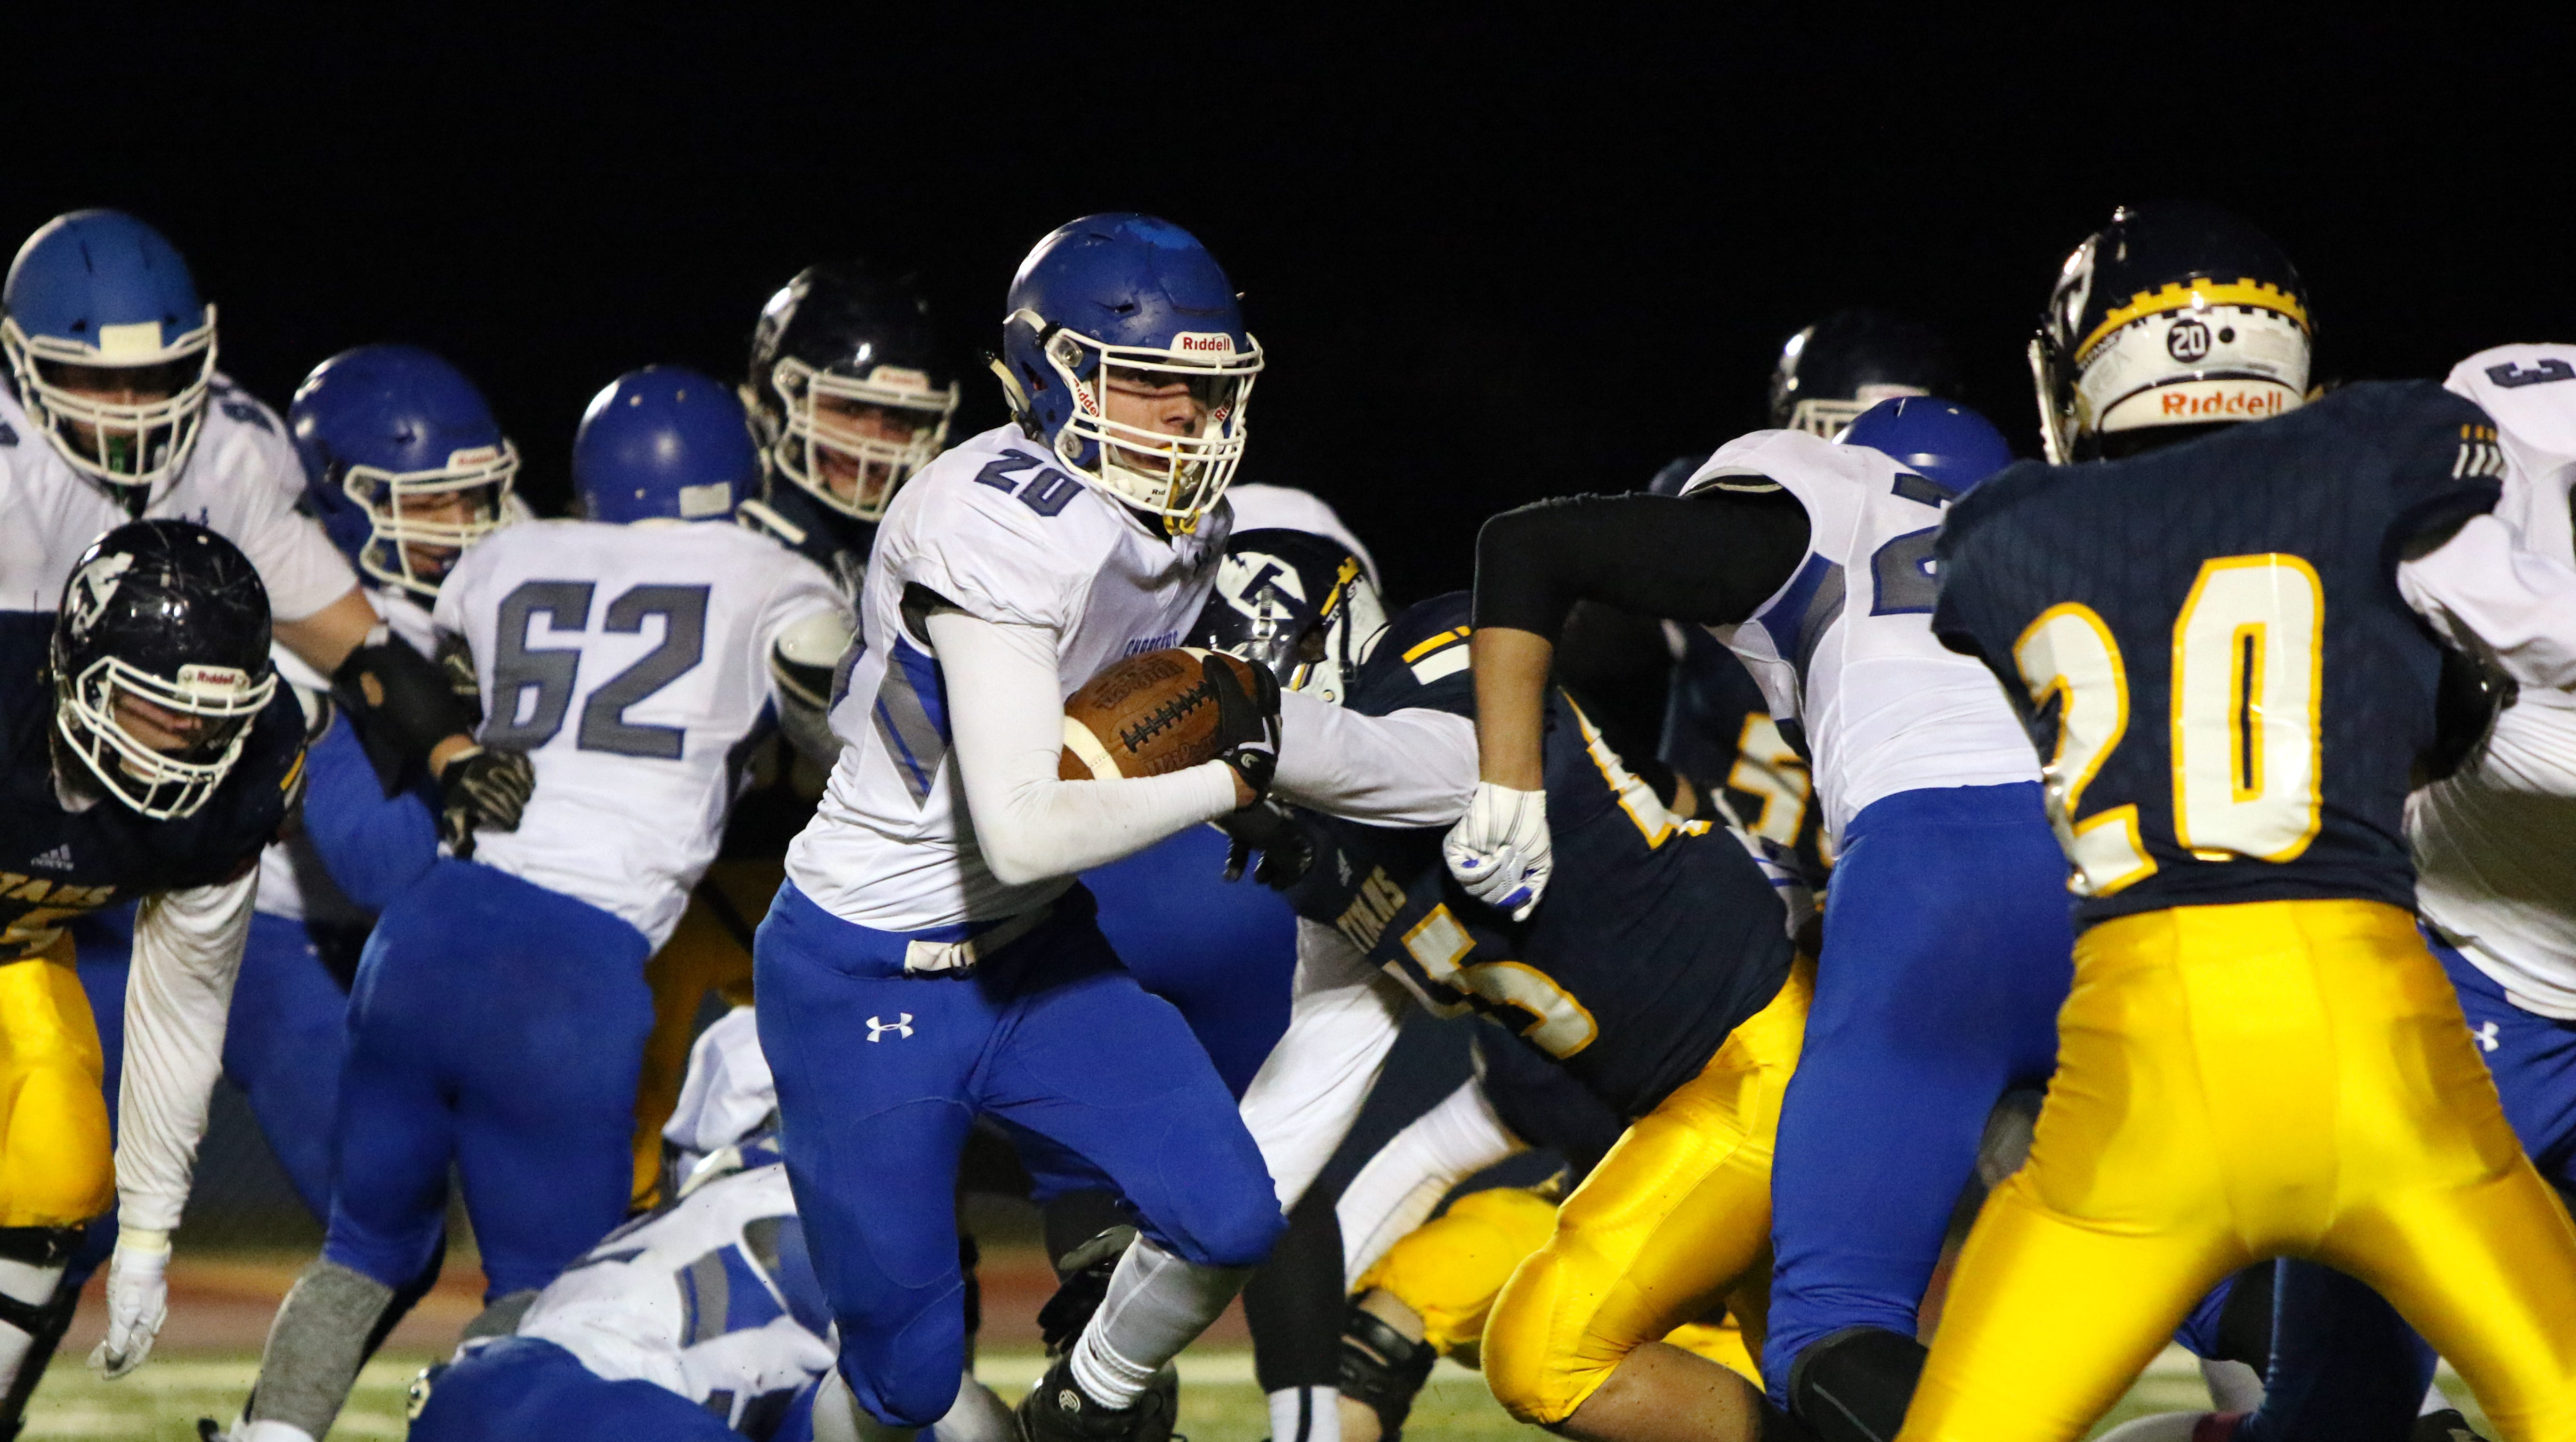 Parker Nelson of Sioux Falls Christian looks for running room past Wyatt VanTol of Tea Area during Friday night's game in Tea.